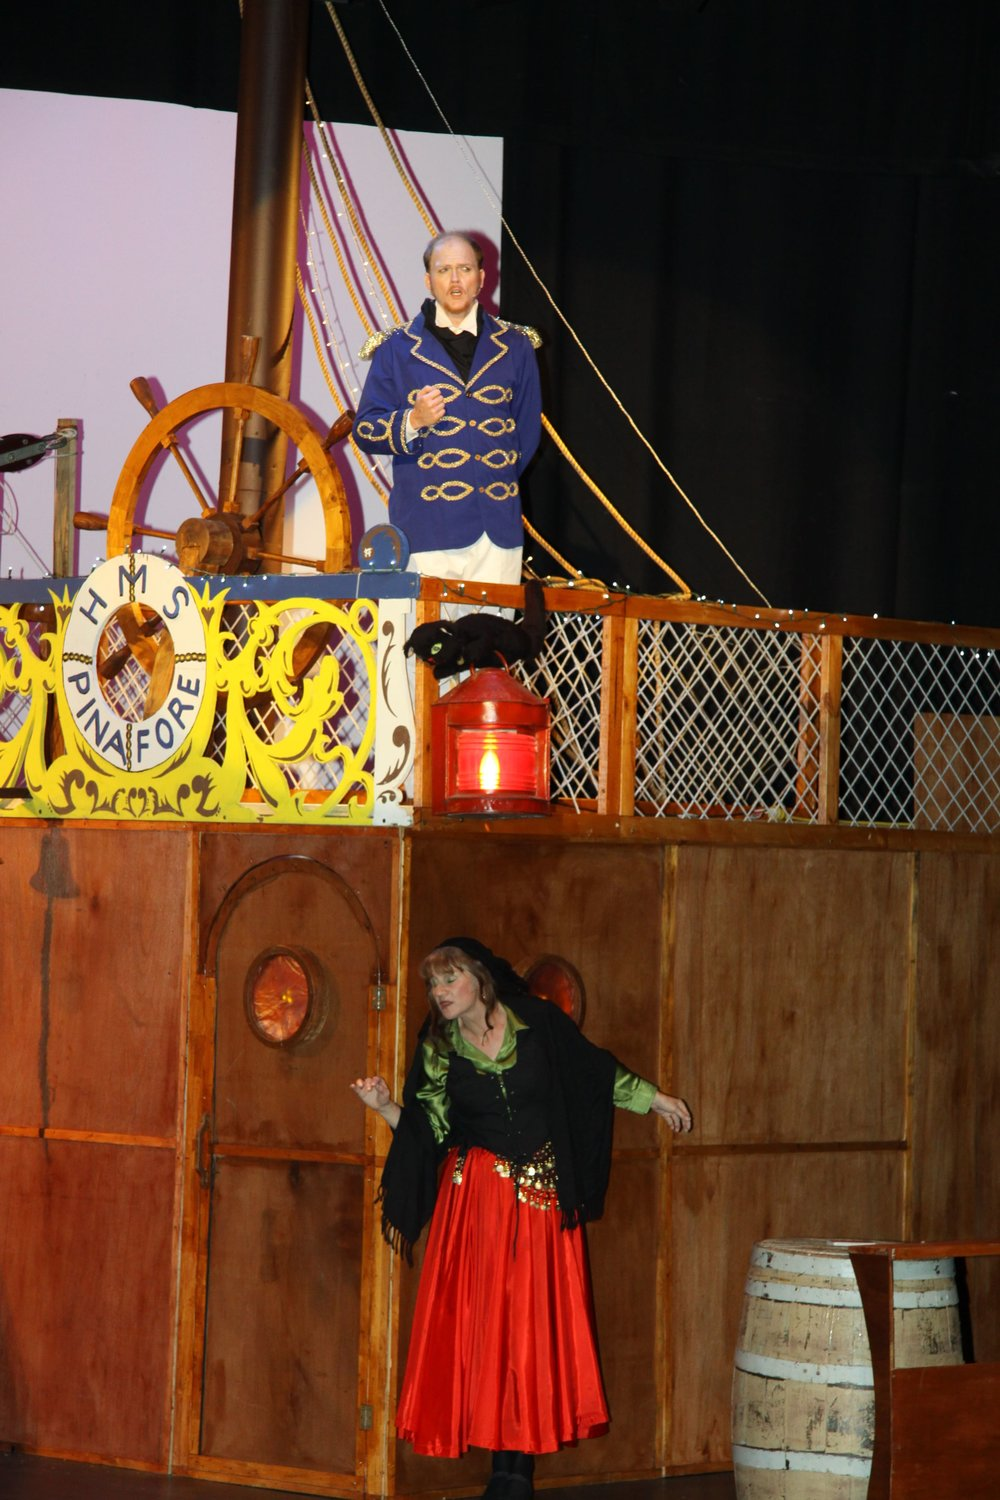 Qmt Pinafore Final 134.JPG